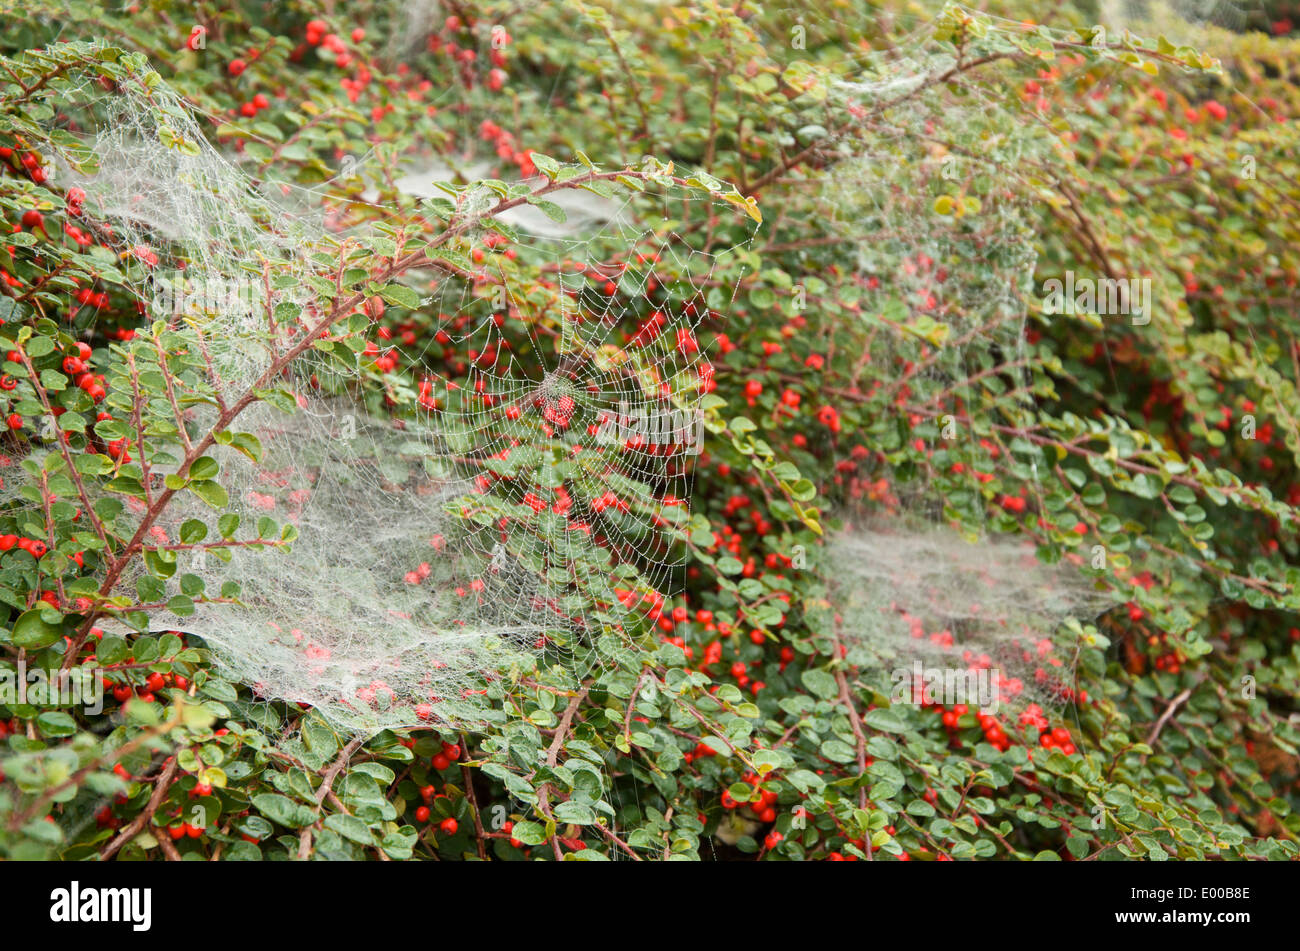 Spider's webs draped on Cotoneaster with red berries in early autumn - Stock Image